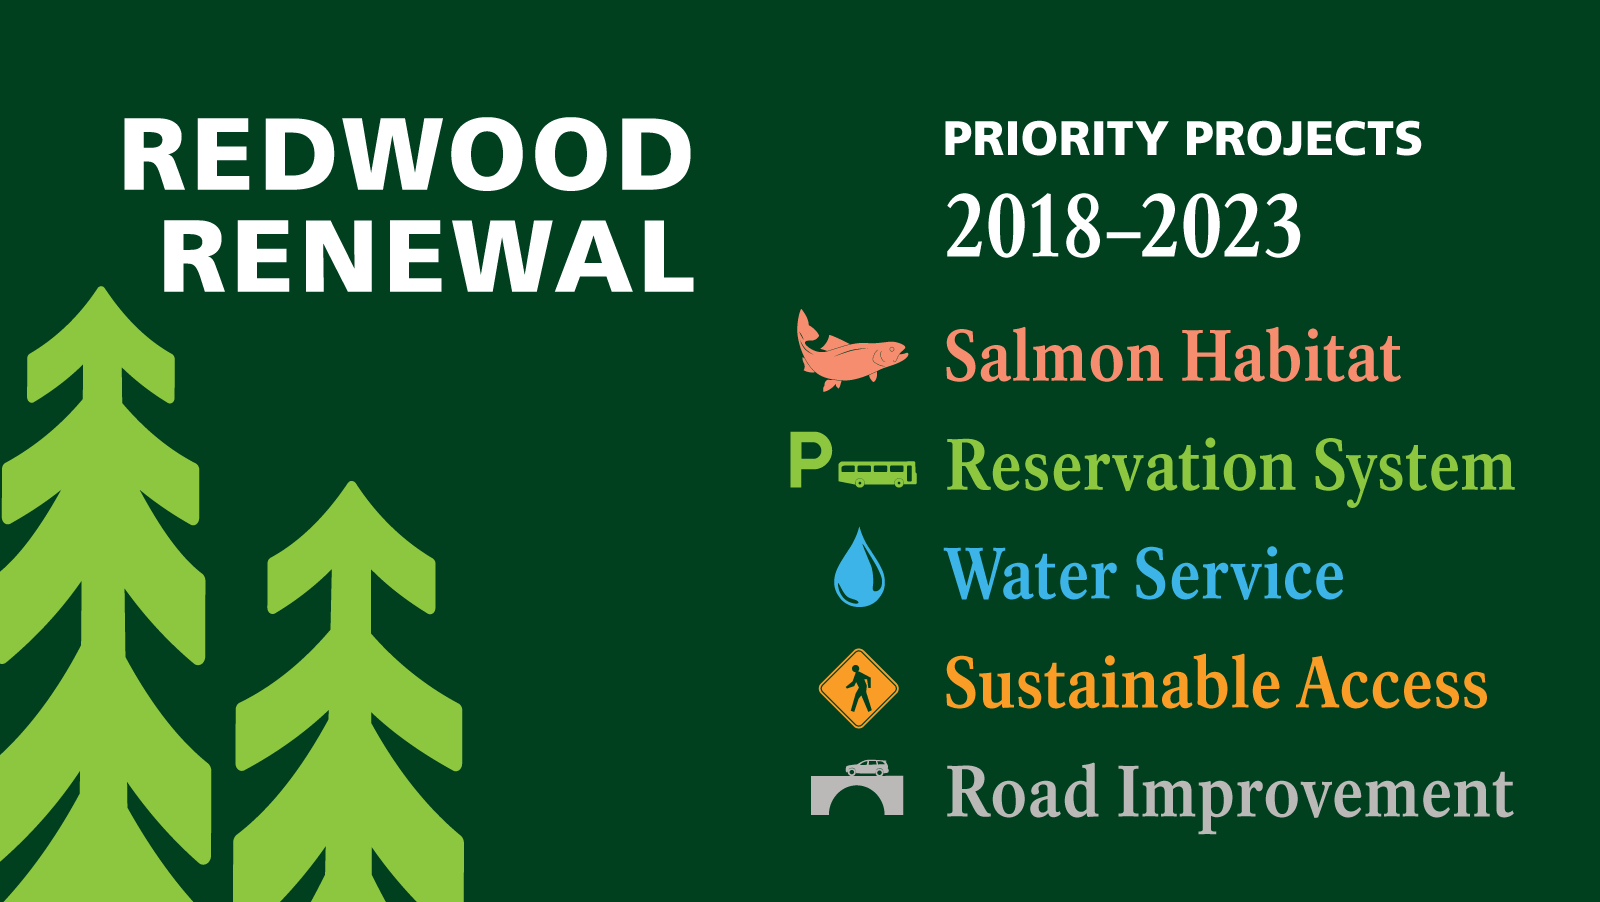 Redwood Renewal Priority Projects 2018-2023: Salmon Habitat Reservation System Water Service sustainable Access Road Improvement